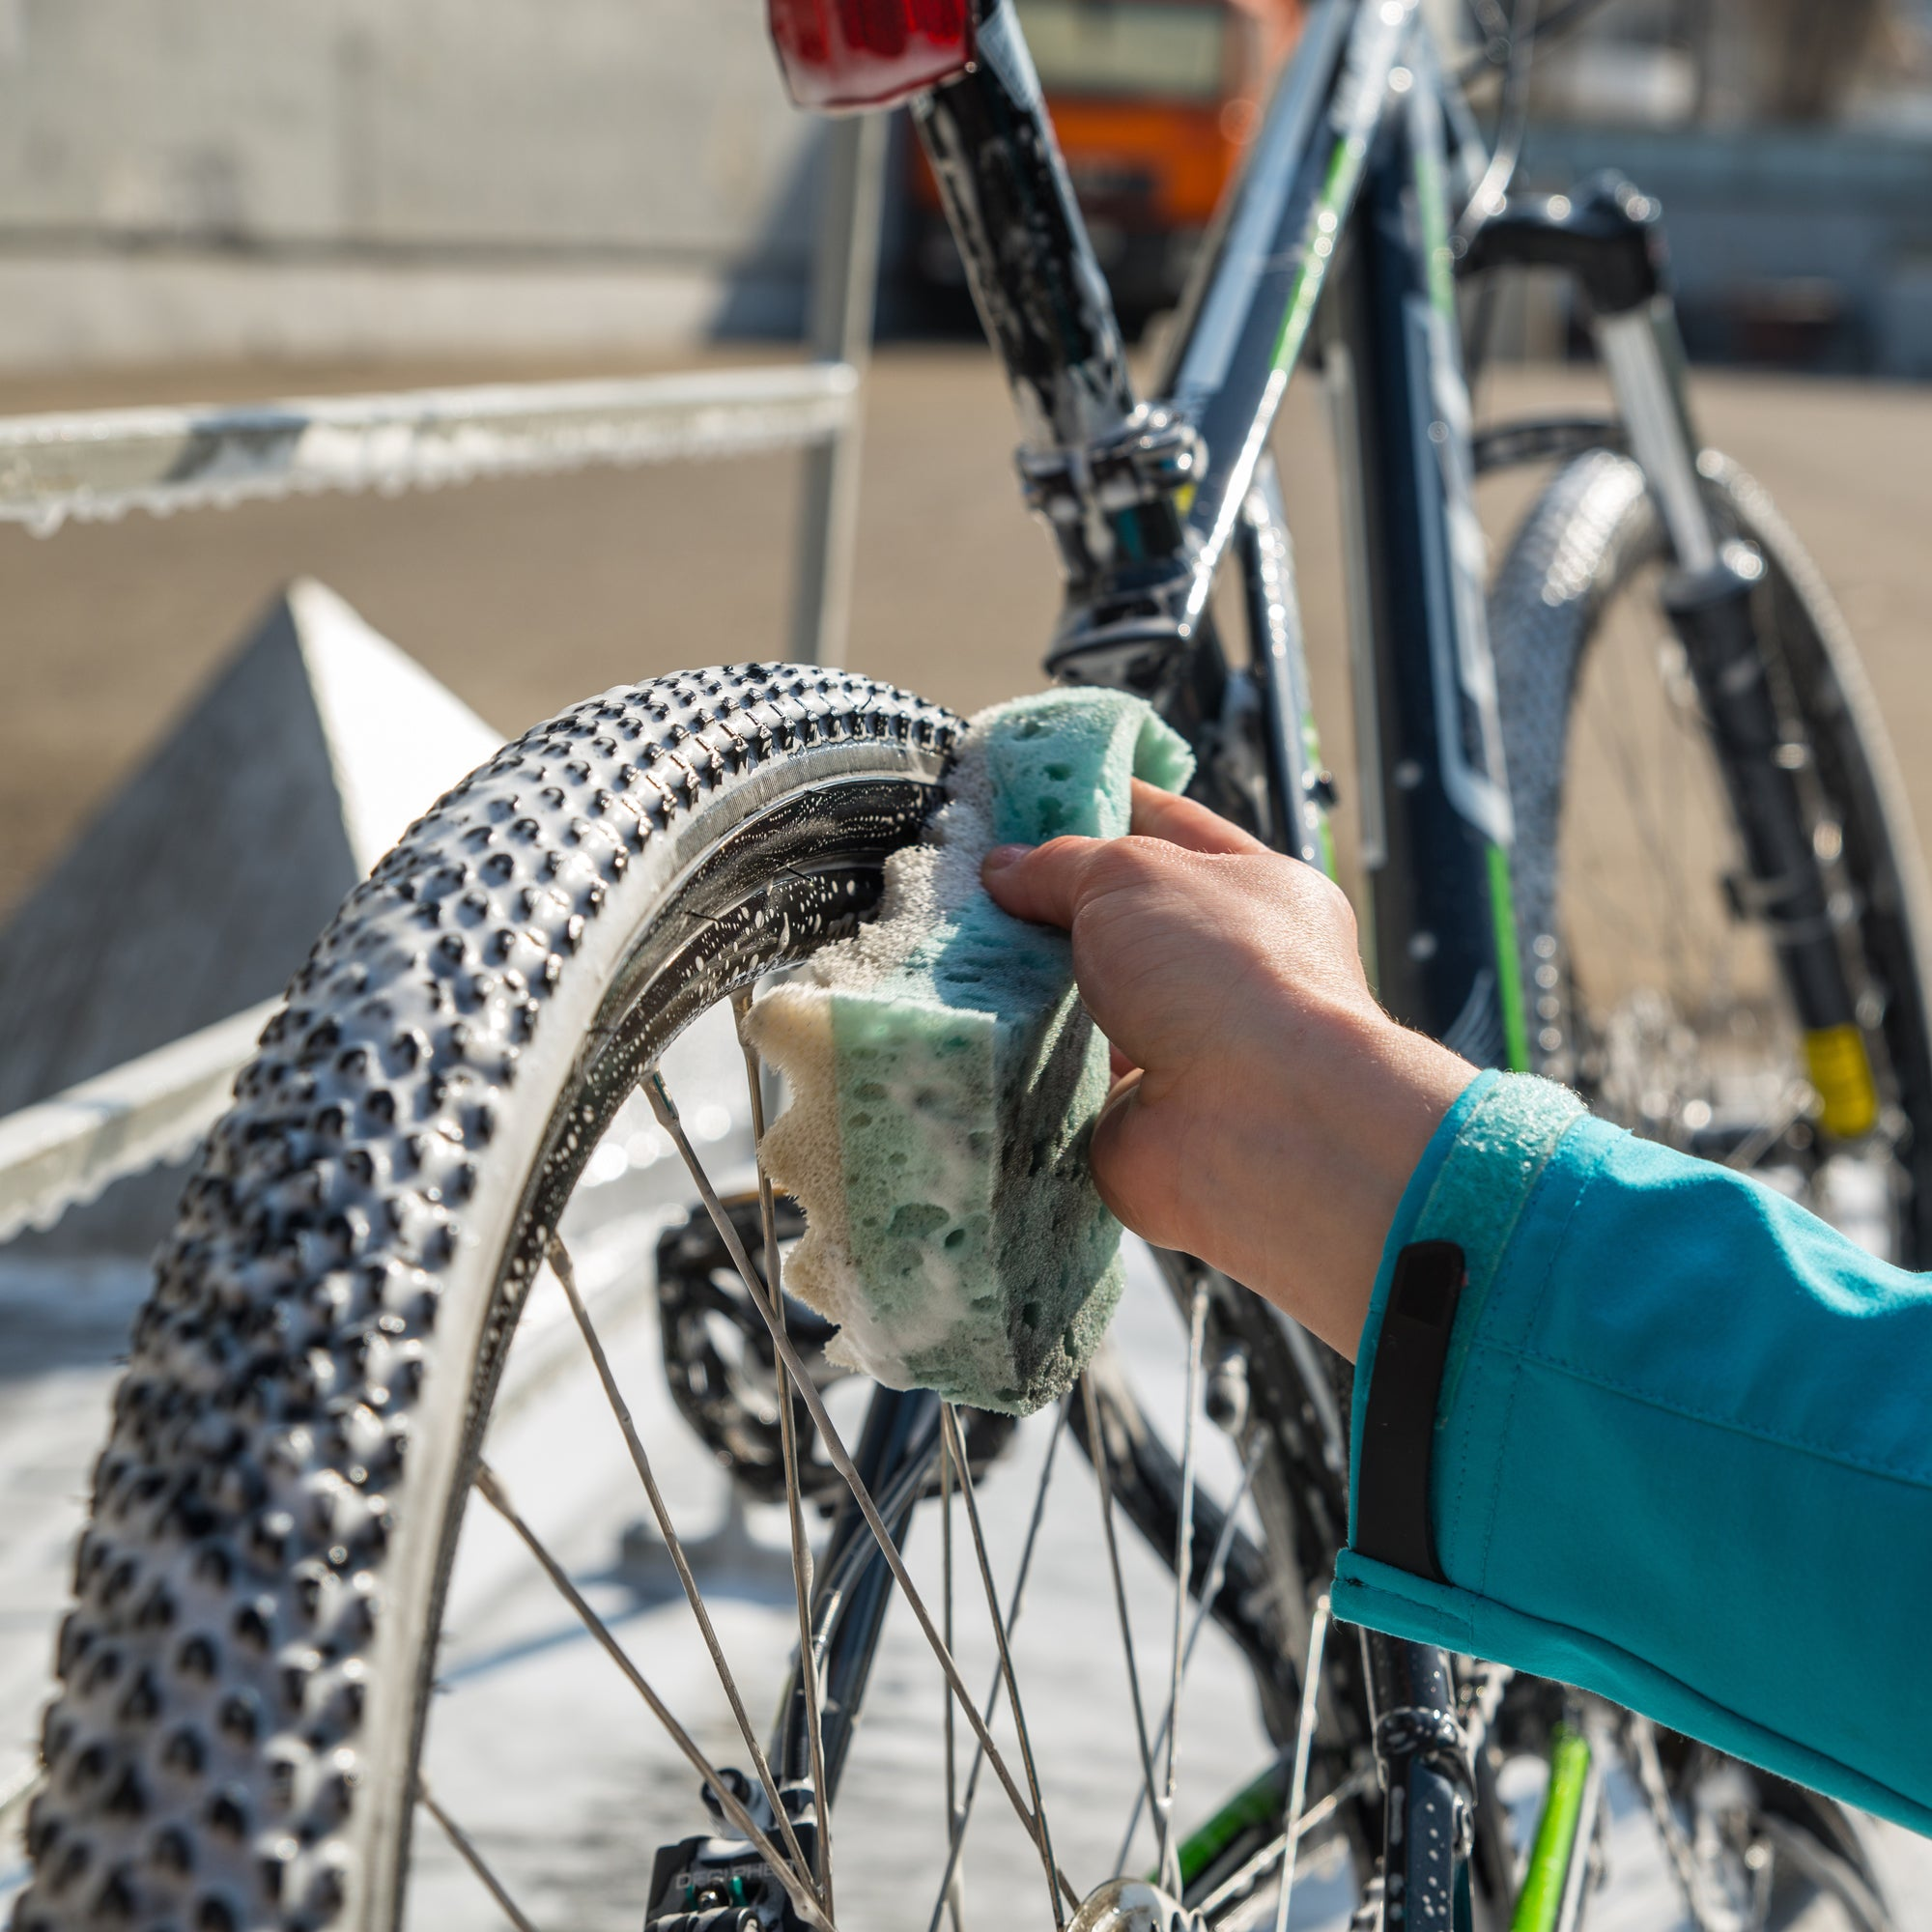 7 Quick And Easy Ways To Clean Your Bike